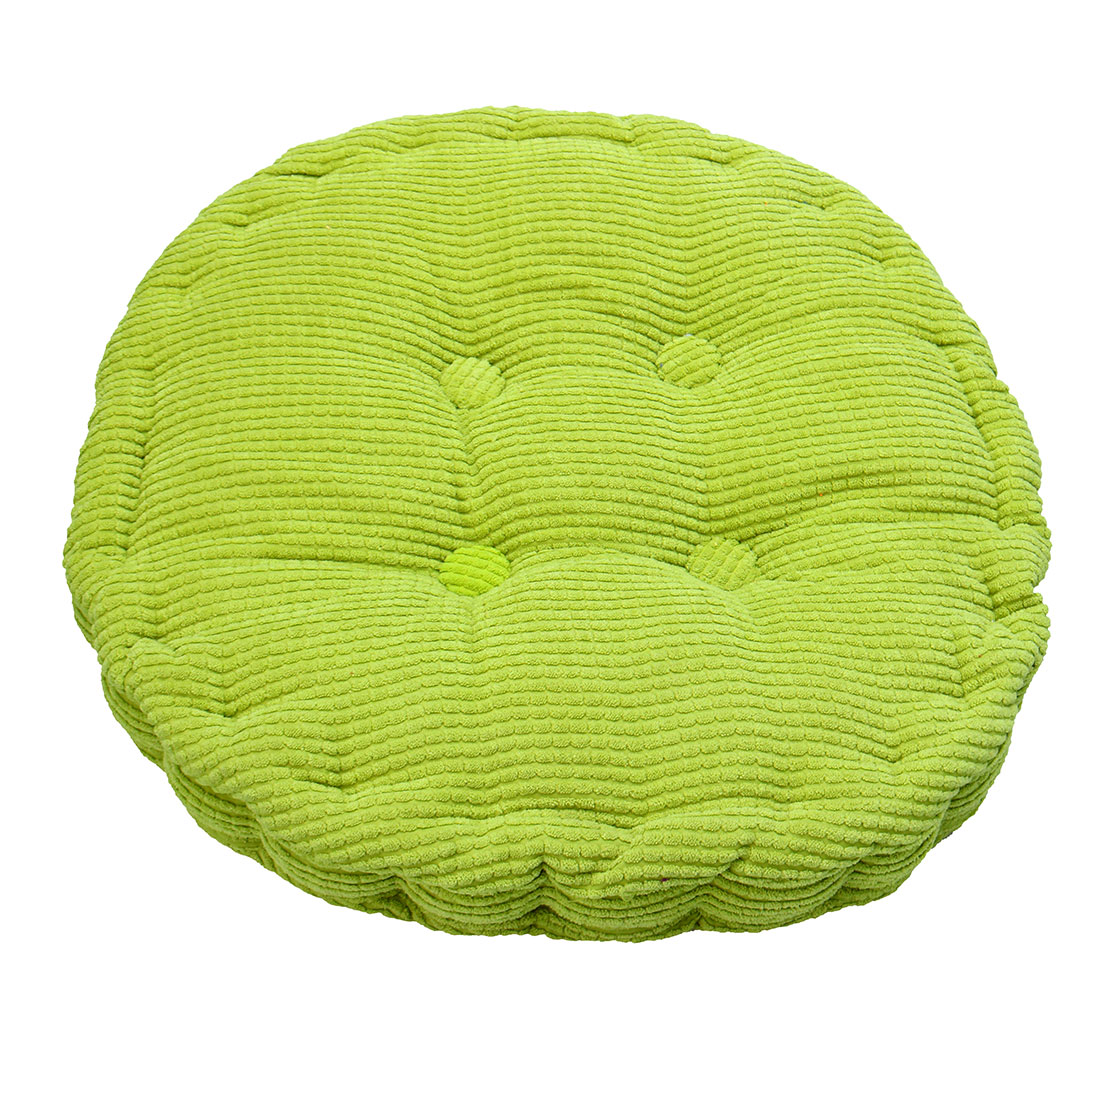 Home Corduroy Round Shaped Thickened Pillow Seat Chair Cushion Pad Mat Grass Green